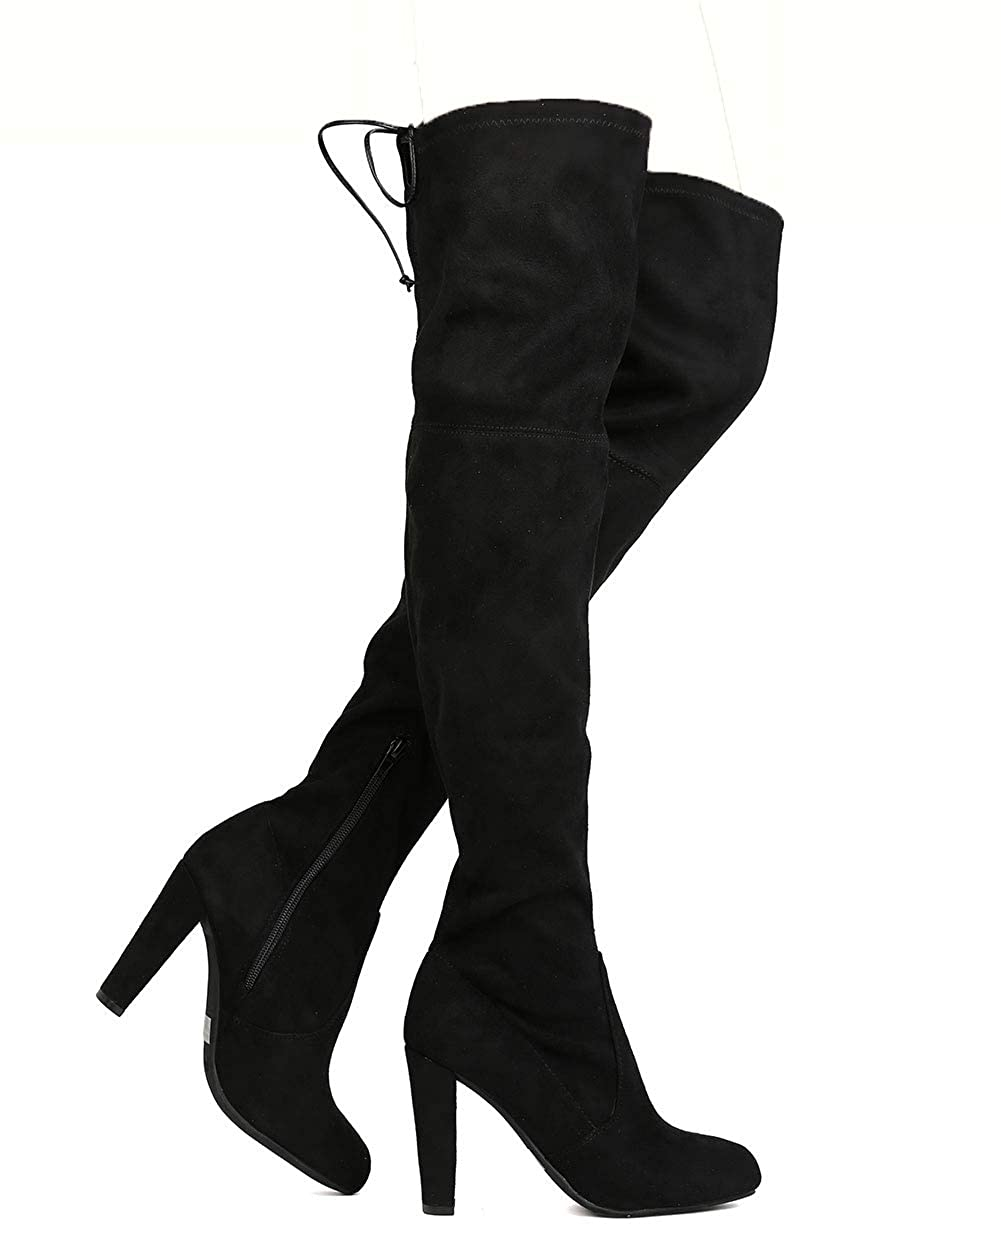 Black Women's Over The Knee Boot Sexy Thigh High Pull on Boots Trendy Low Block Heel shoes